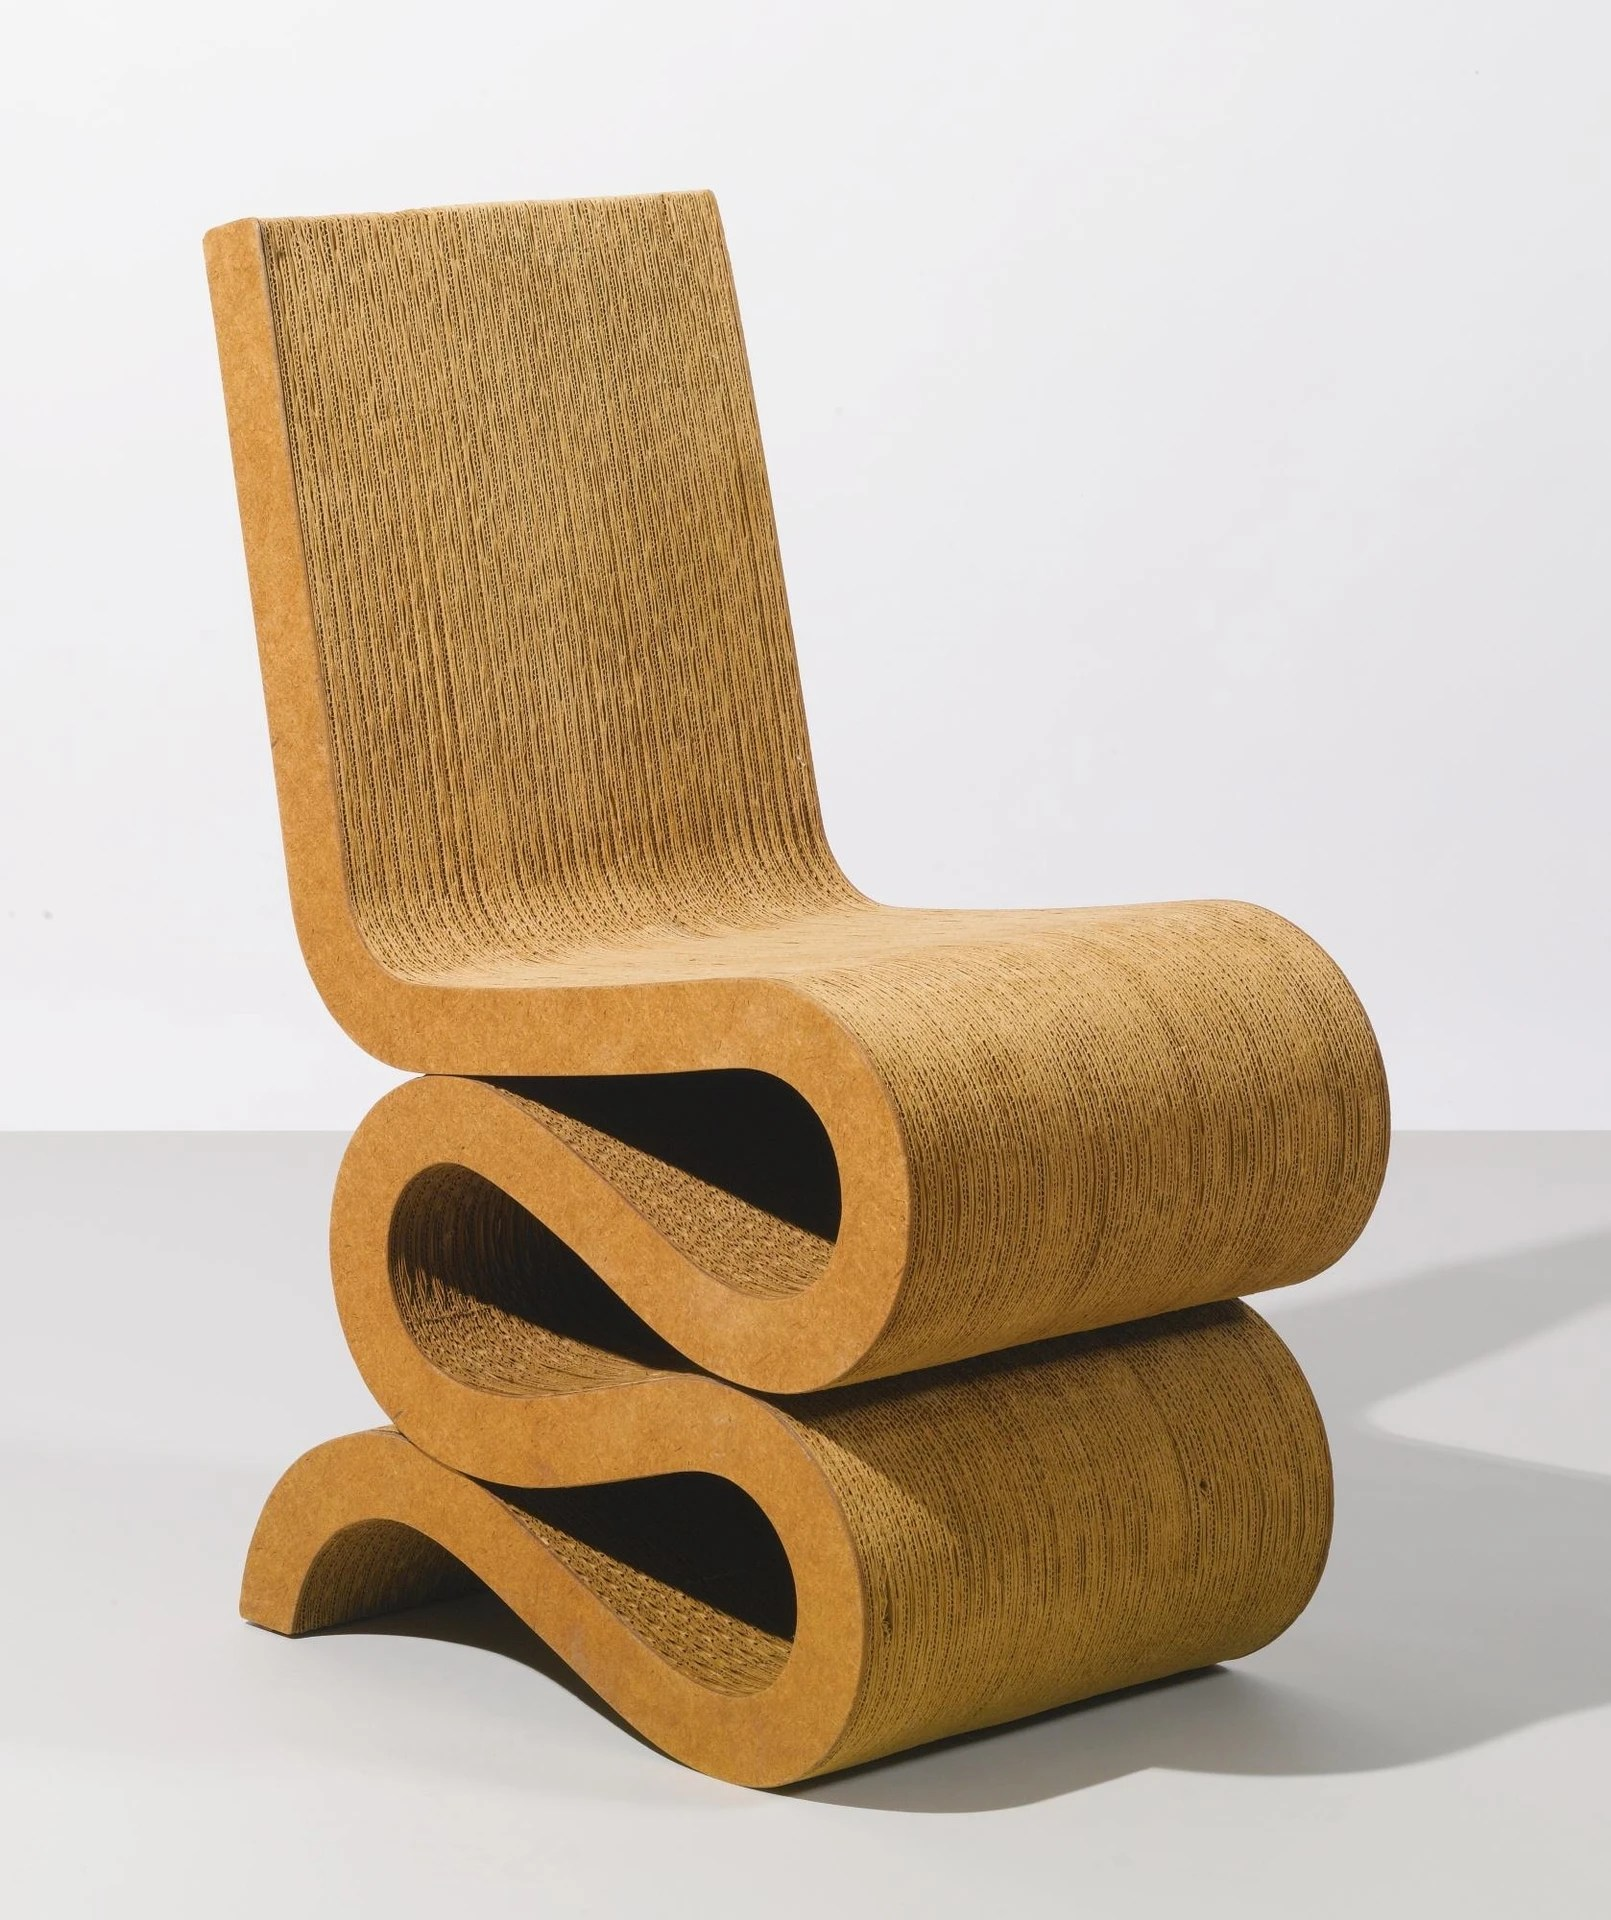 frank gehry cardboard chair folding buy prototype quotwiggle quot 1971